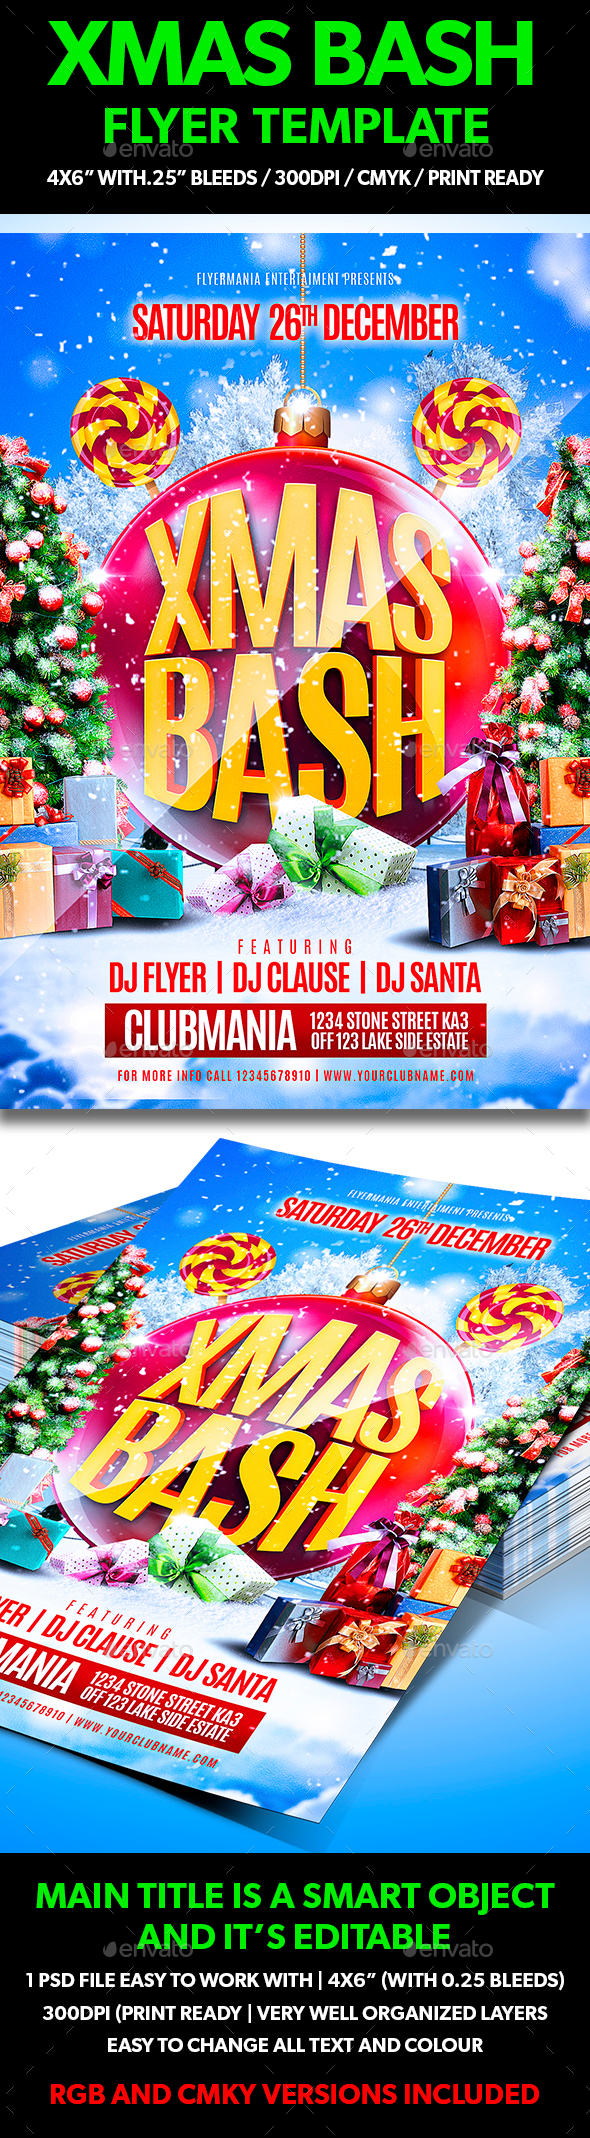 Xmas Bash Flyer Template - Holidays Events